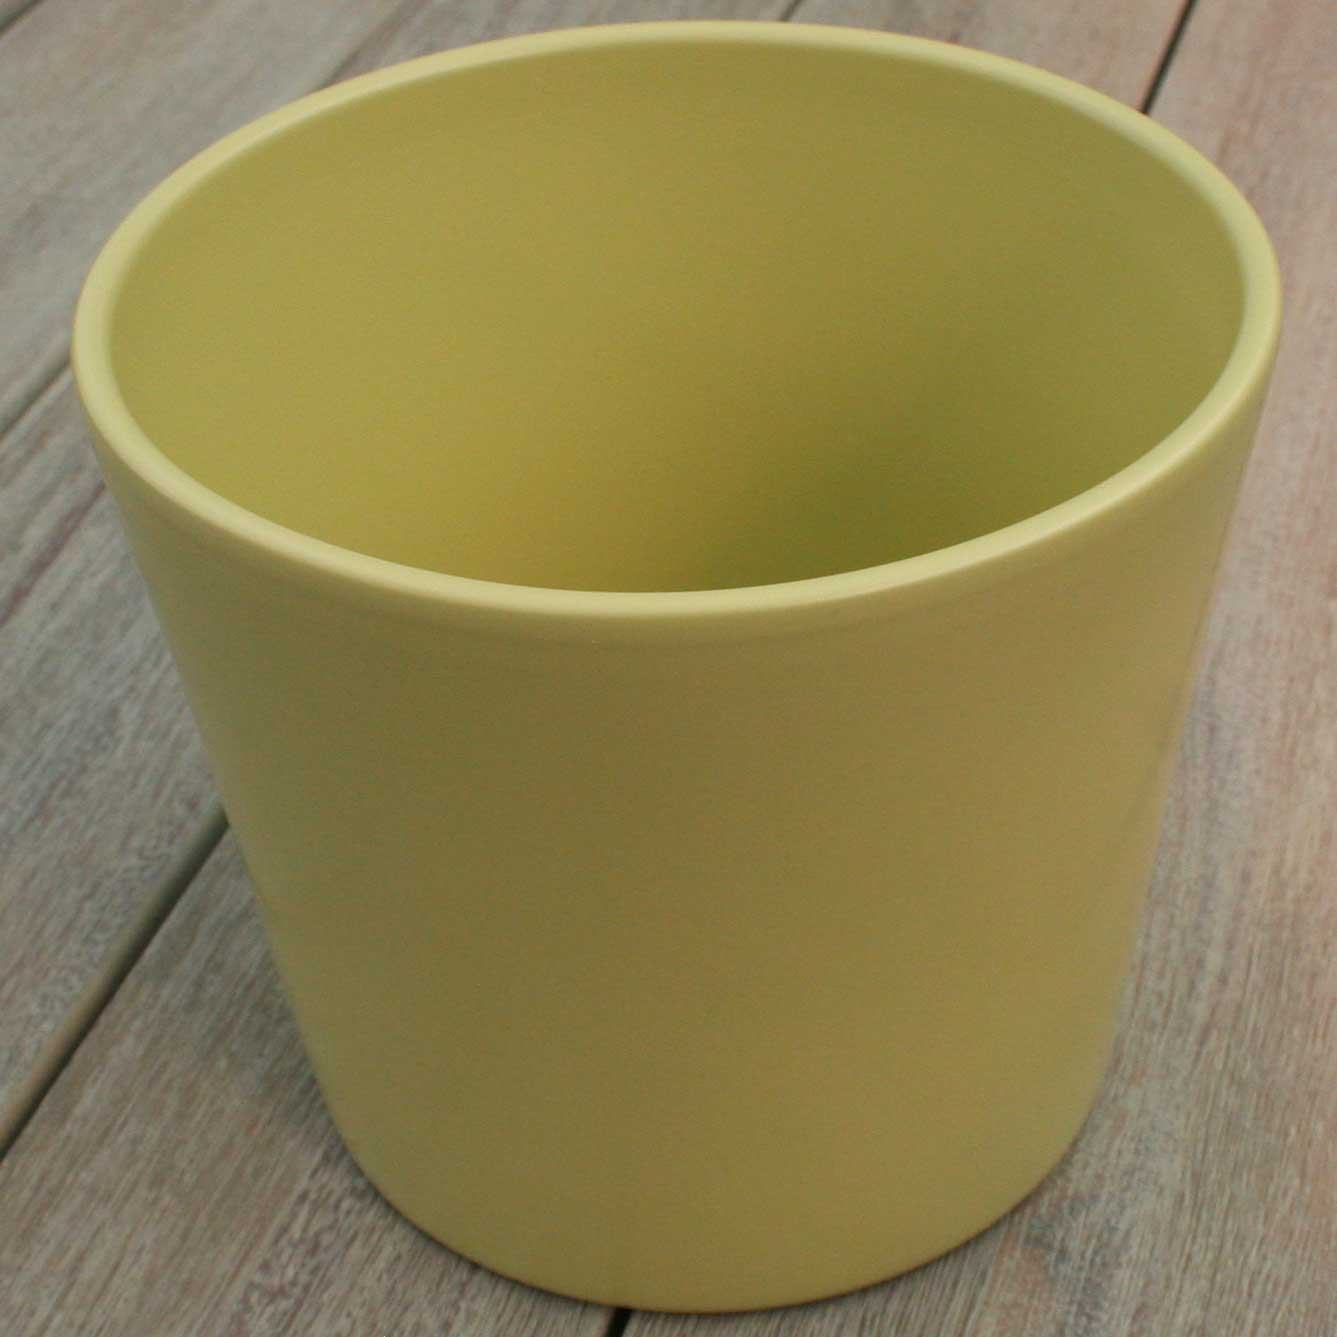 Ceramic Pots For Plants Indoor Ivyline Matt Green Ceramic Plant Pot Cover